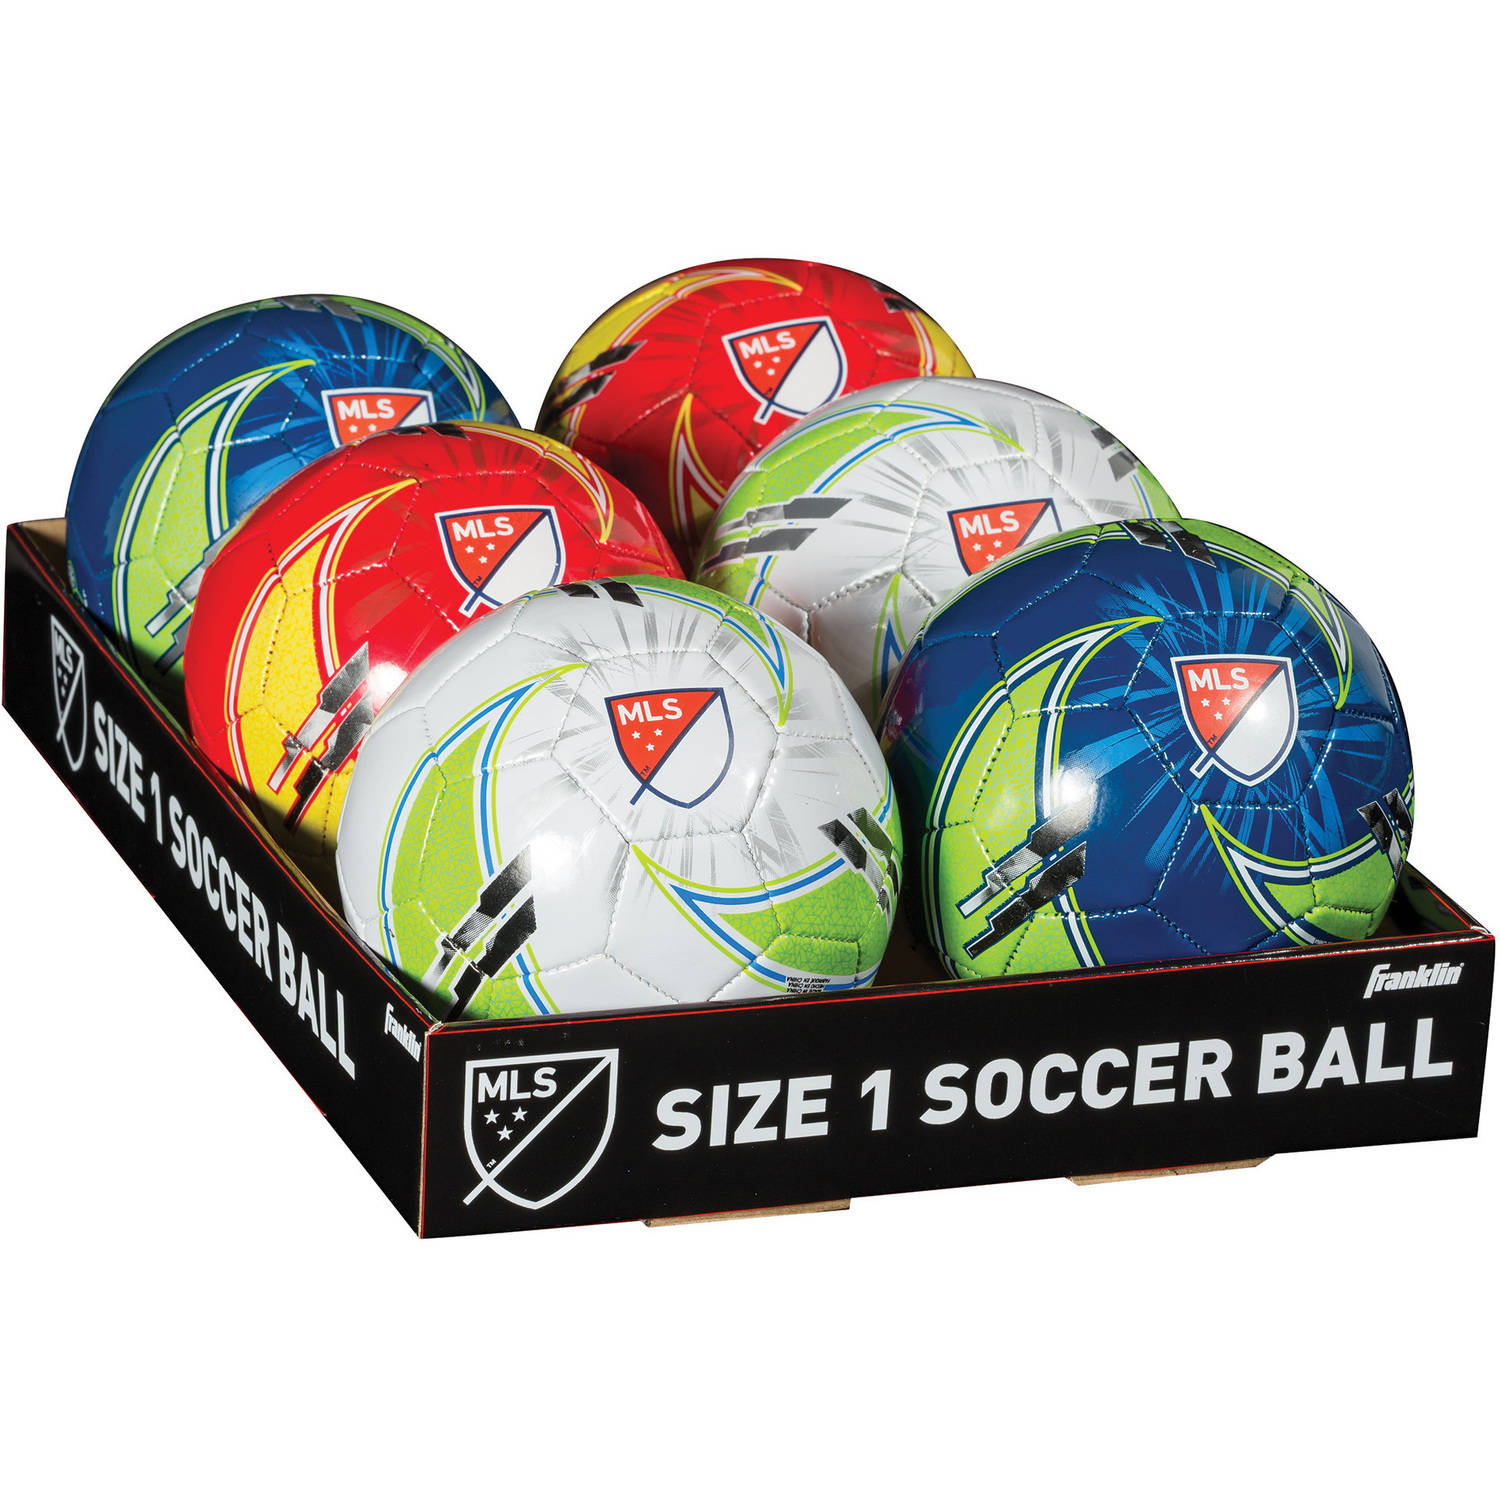 Franklin Sports MLS Size 1 Soccer Ball, Assorted Colors by Franklin Sports